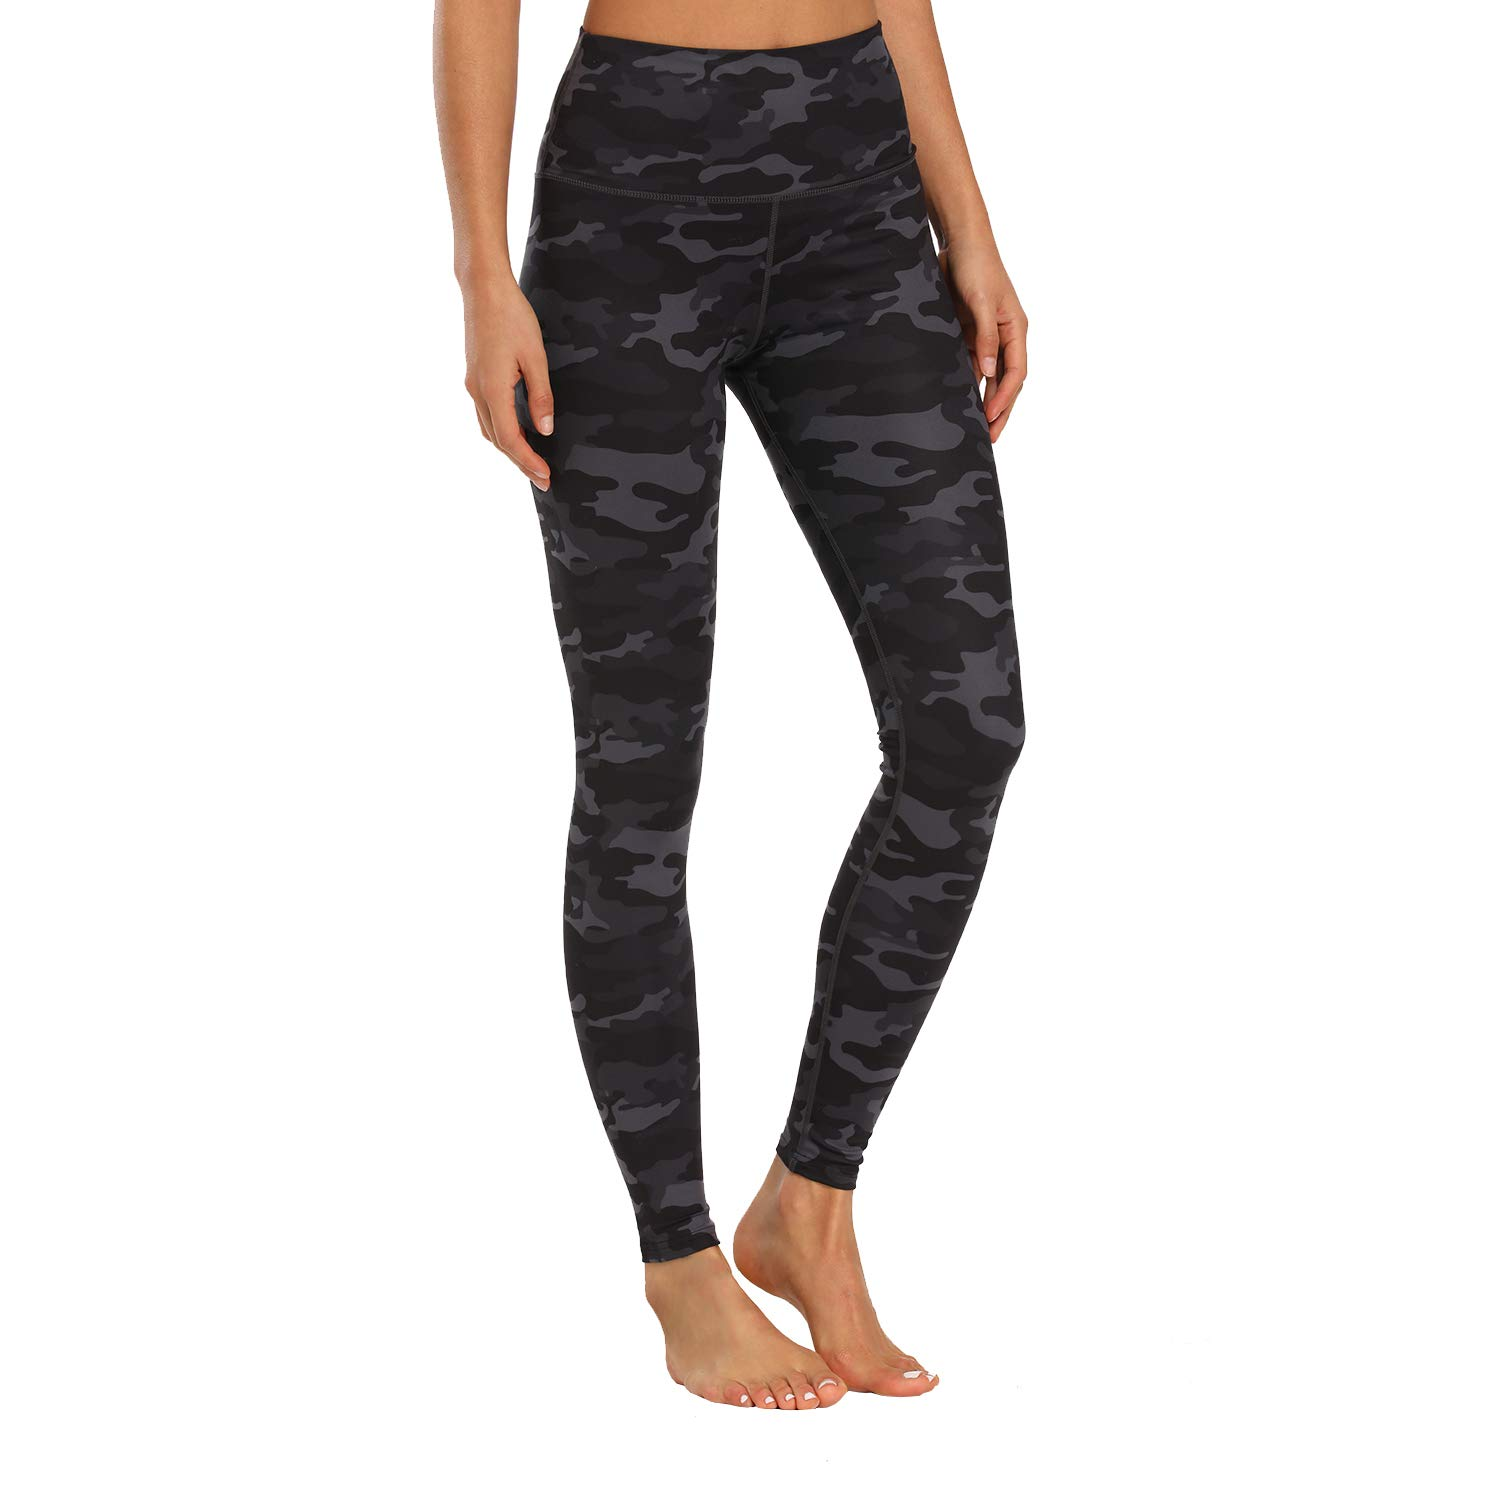 Houmous Women's Buttery Soft Printed Leggings High Waisted Full-Length Yoga Pants